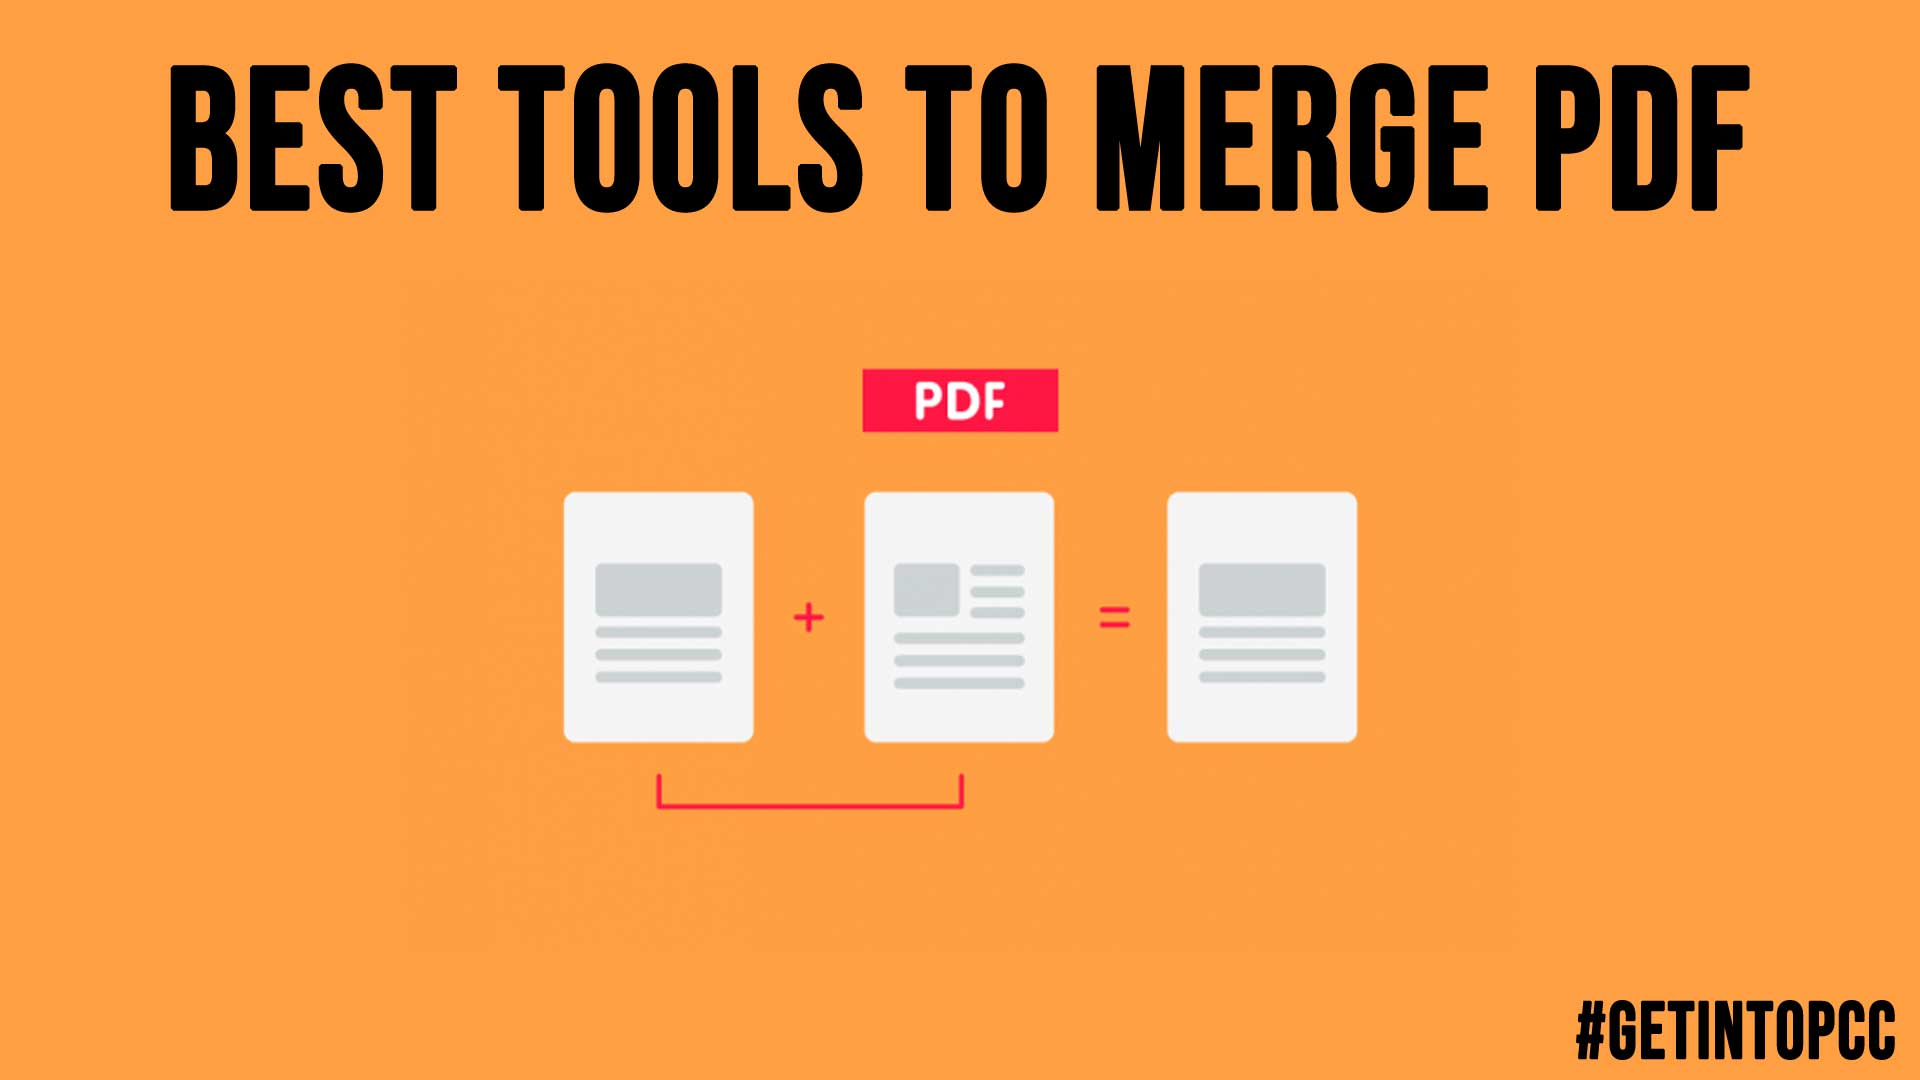 Best Tools to Merge PDF